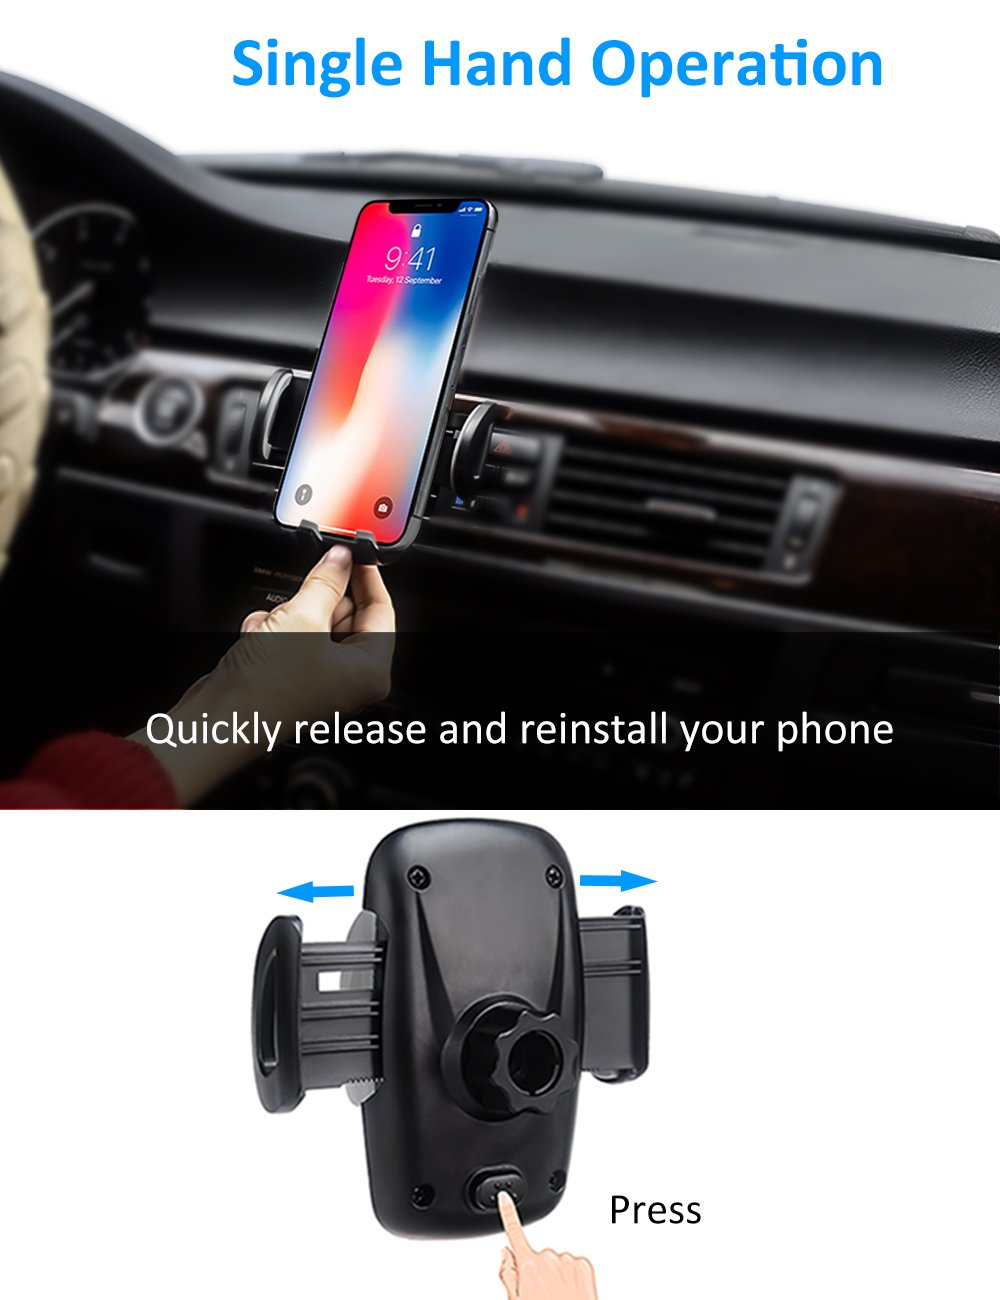 woleyi Car Vent Mount Air Vent Clip - Car Holder for Cell Phones and GPS by woleyi (Image #3)